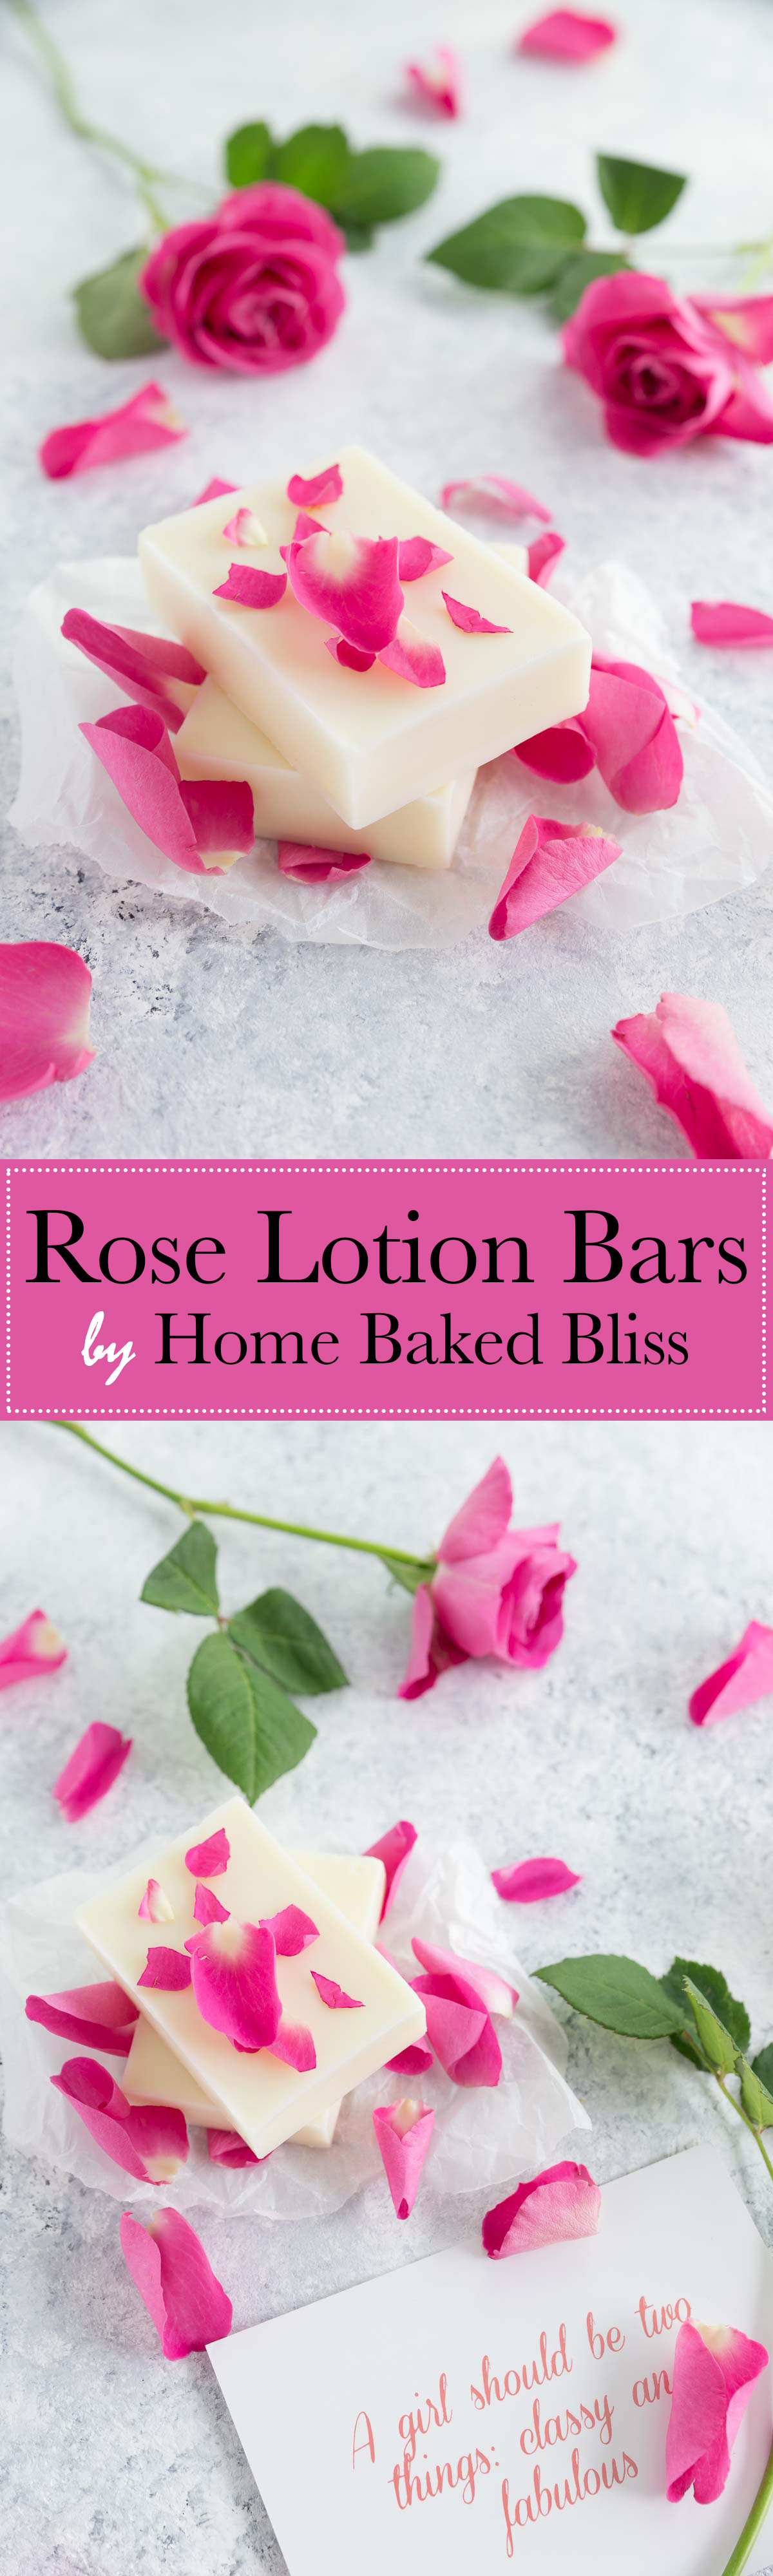 Rose Lotion Bars